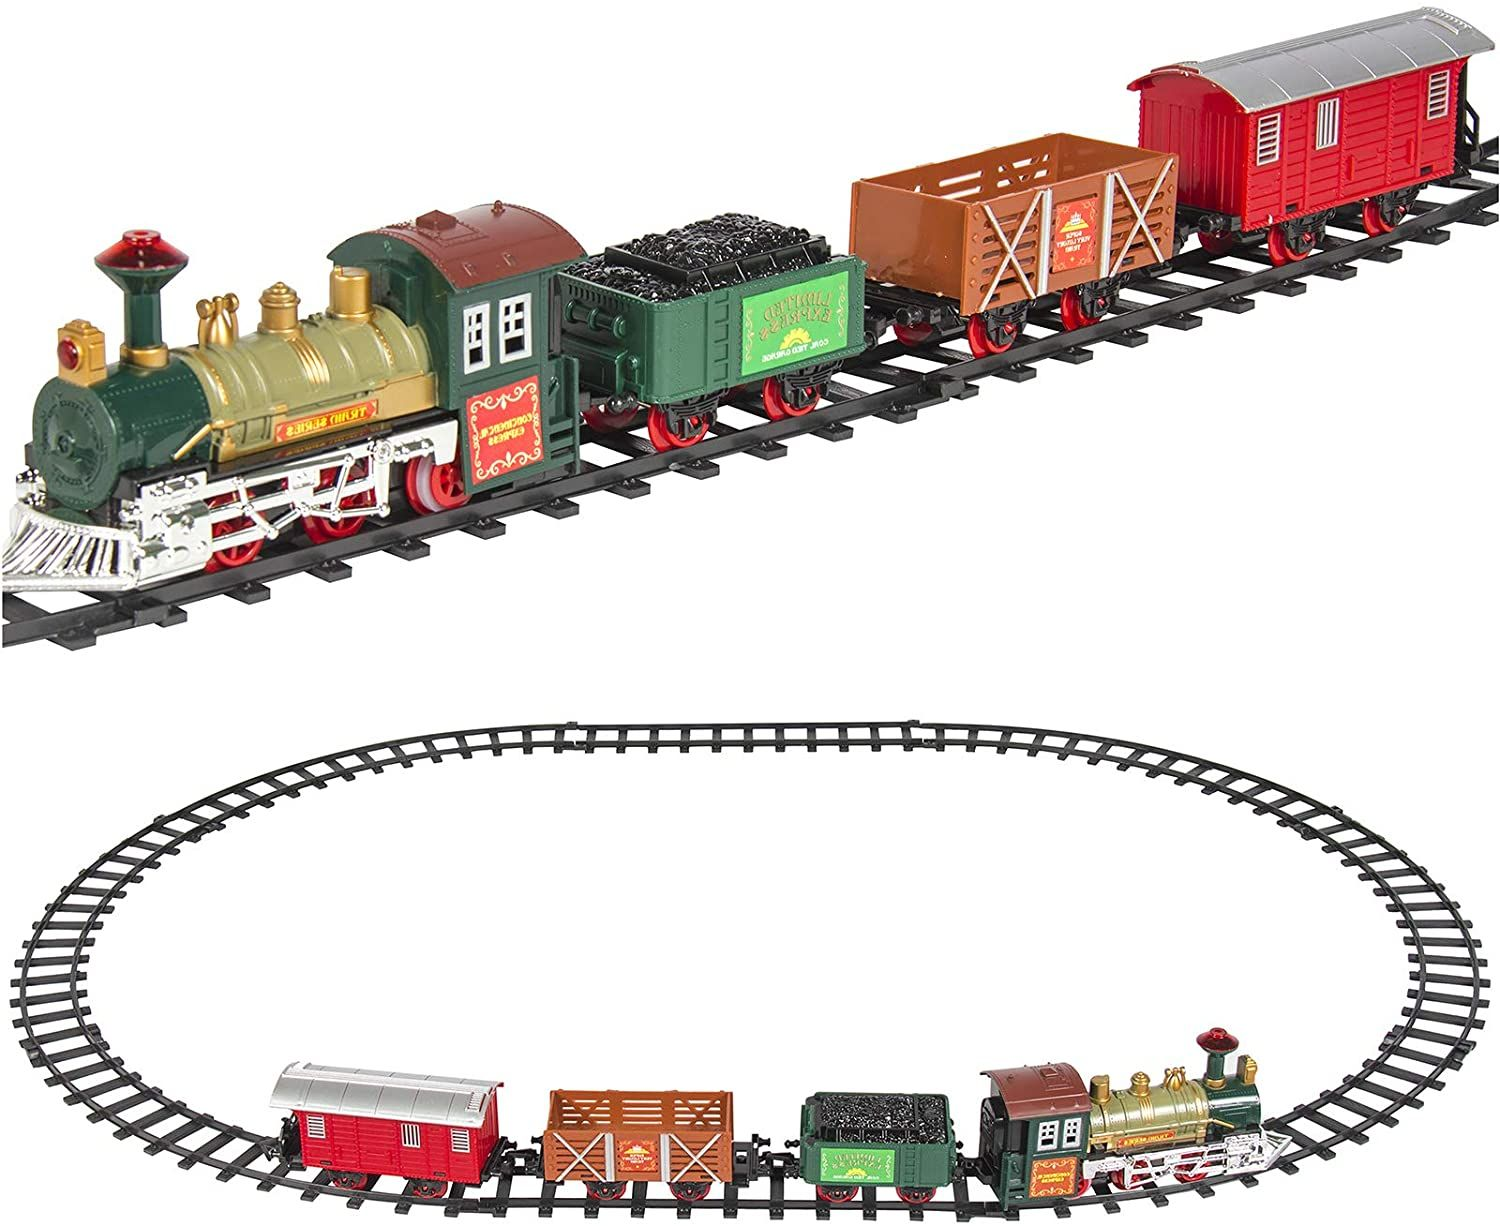 Best Choice Products Kids Classic Electric Railway Train Car Track Play Set Toy W Music And Lights In 2021 Model Trains Model Train Sets Model Railroad